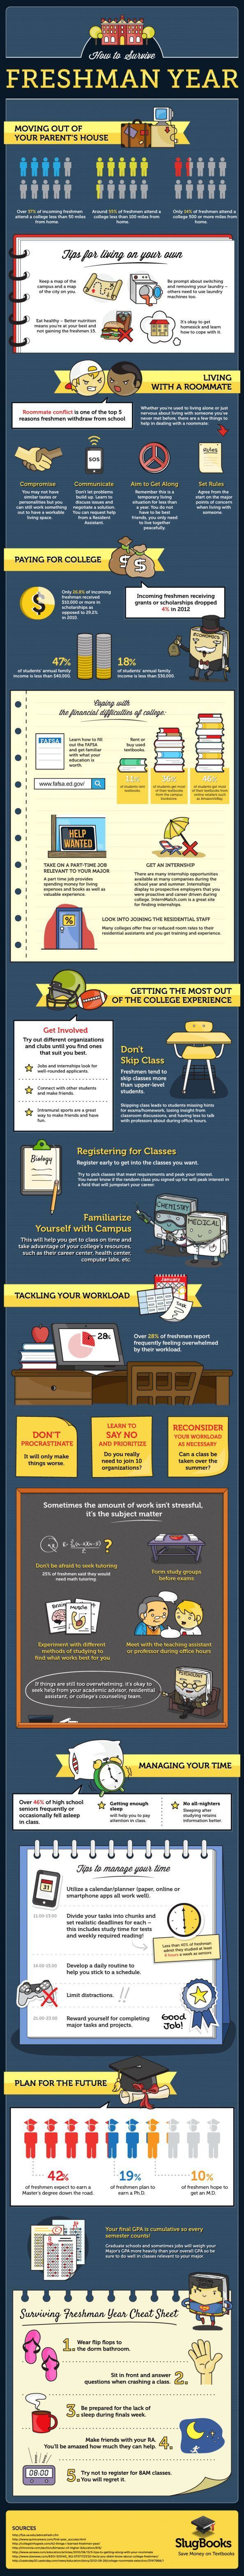 How To Survive Freshman Year at College [Infographic] - http://www.bestinfographics.co/how-to-survive-freshman-year-at-college-infographic/